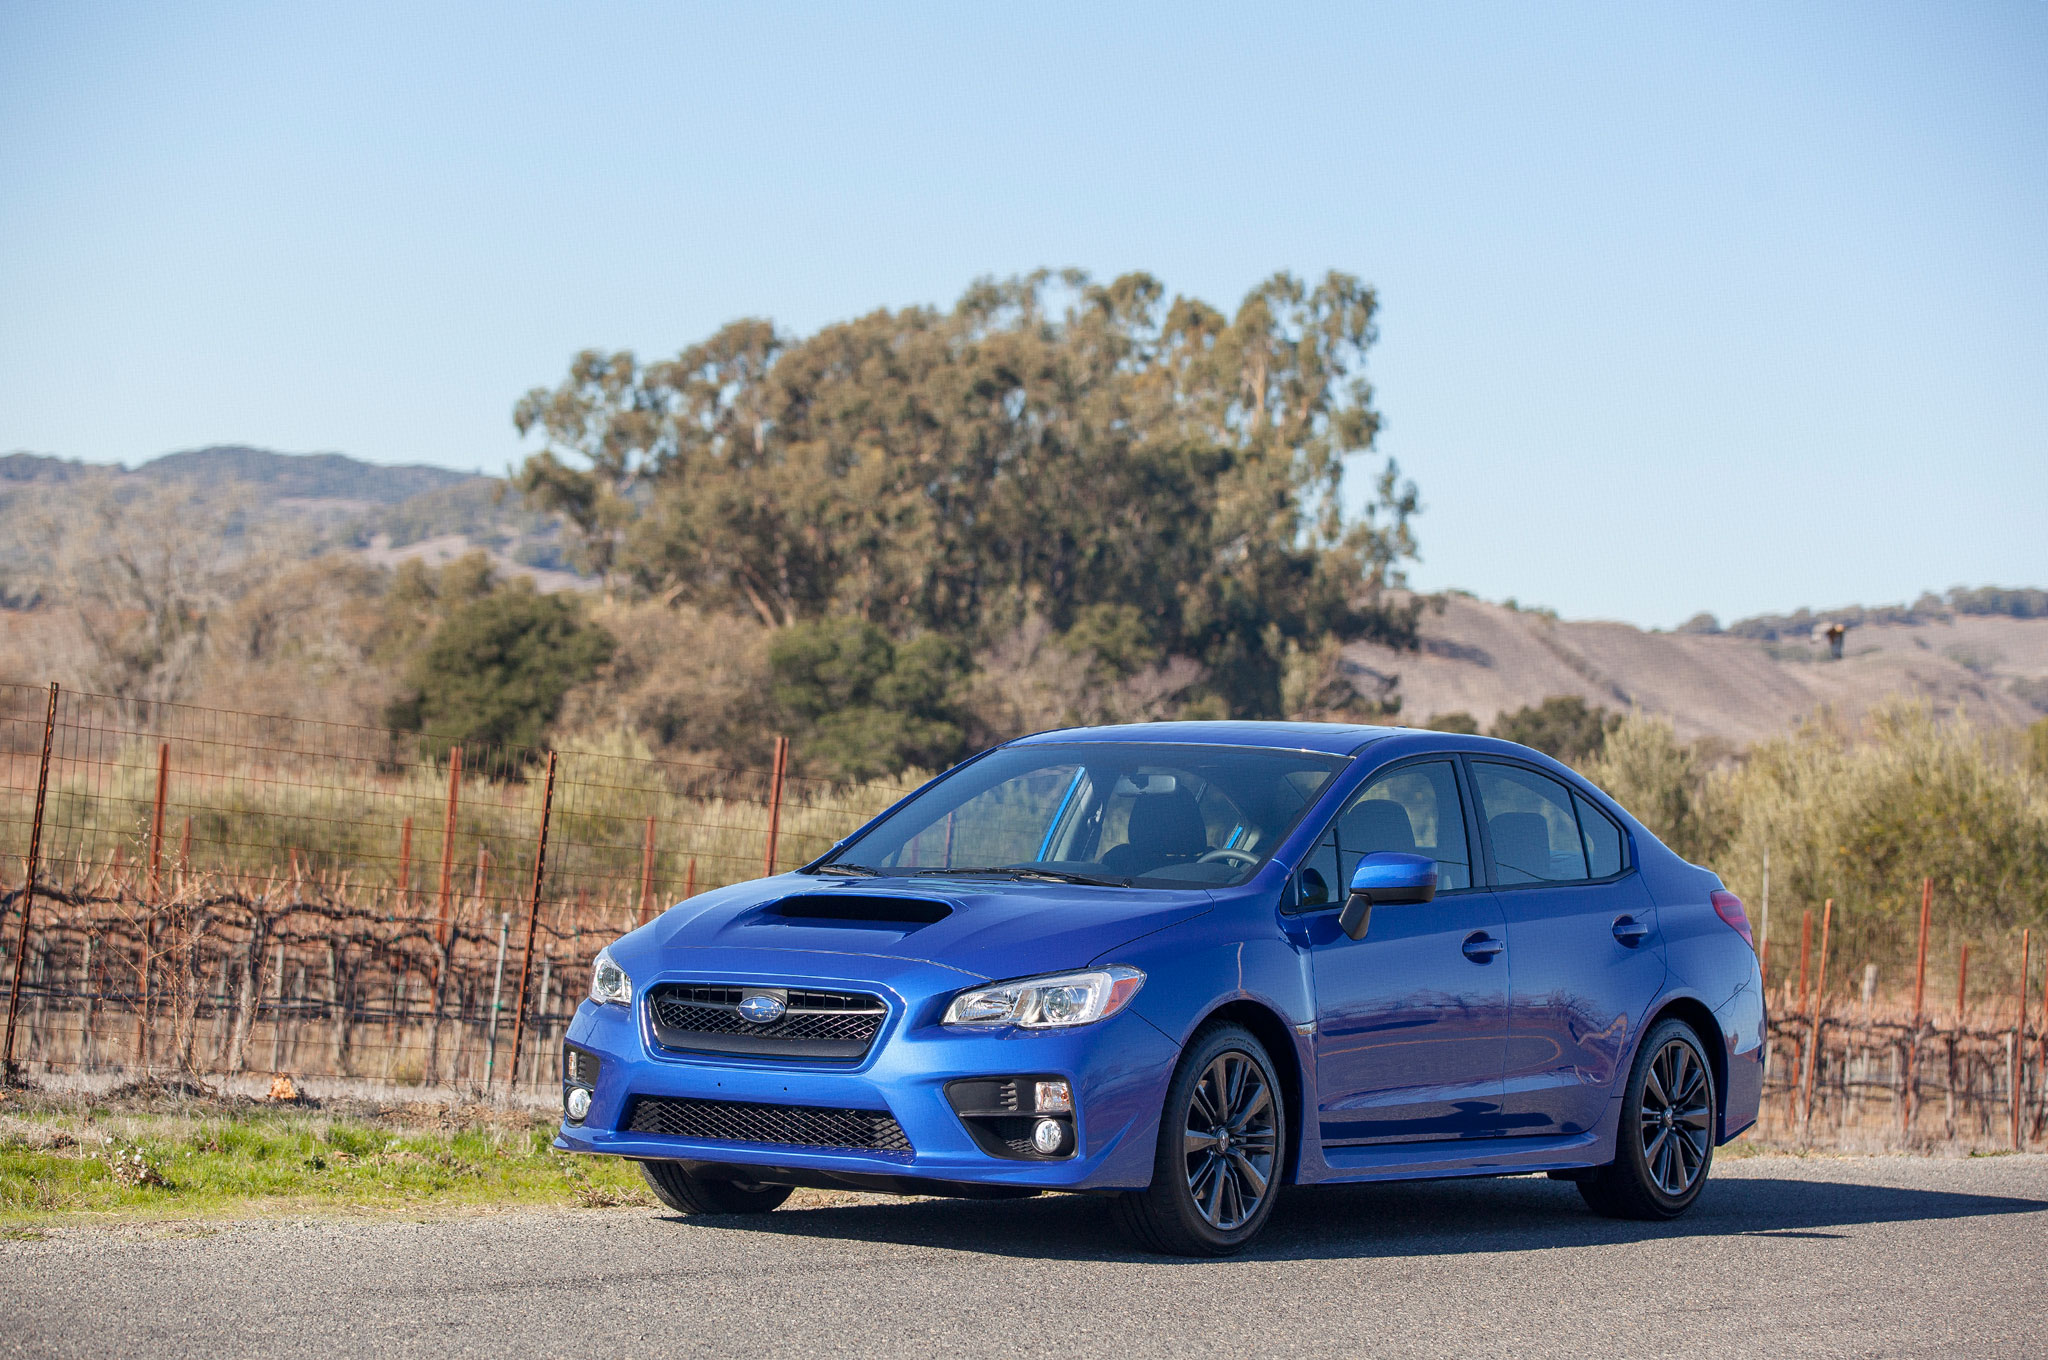 subaru confirms updated eyesight debuting in u s for 2015 model year automobile magazine. Black Bedroom Furniture Sets. Home Design Ideas